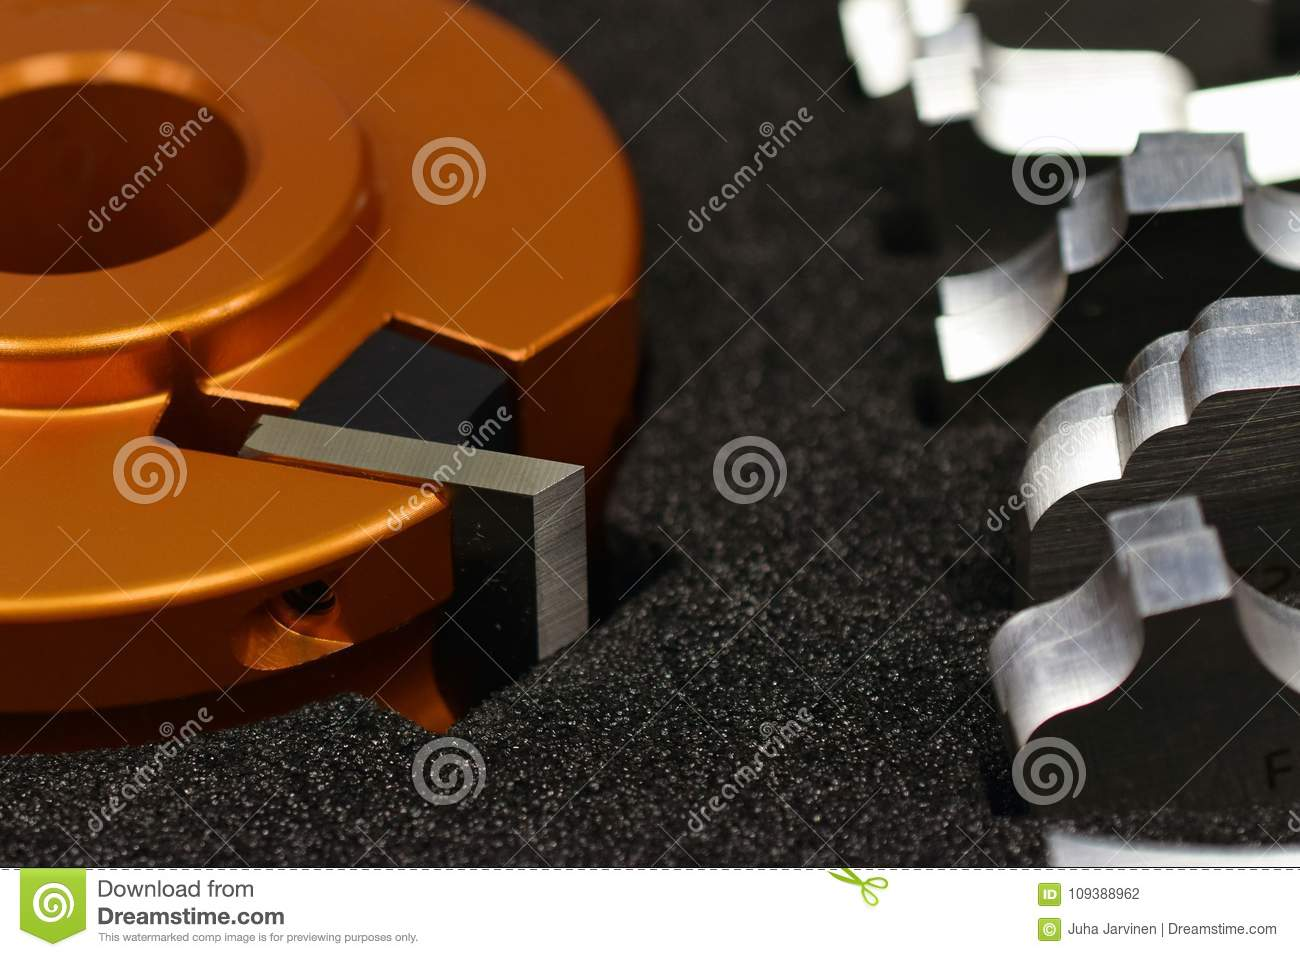 Shaper Cutter Head And Knives Stock Photo - Image of image, blade